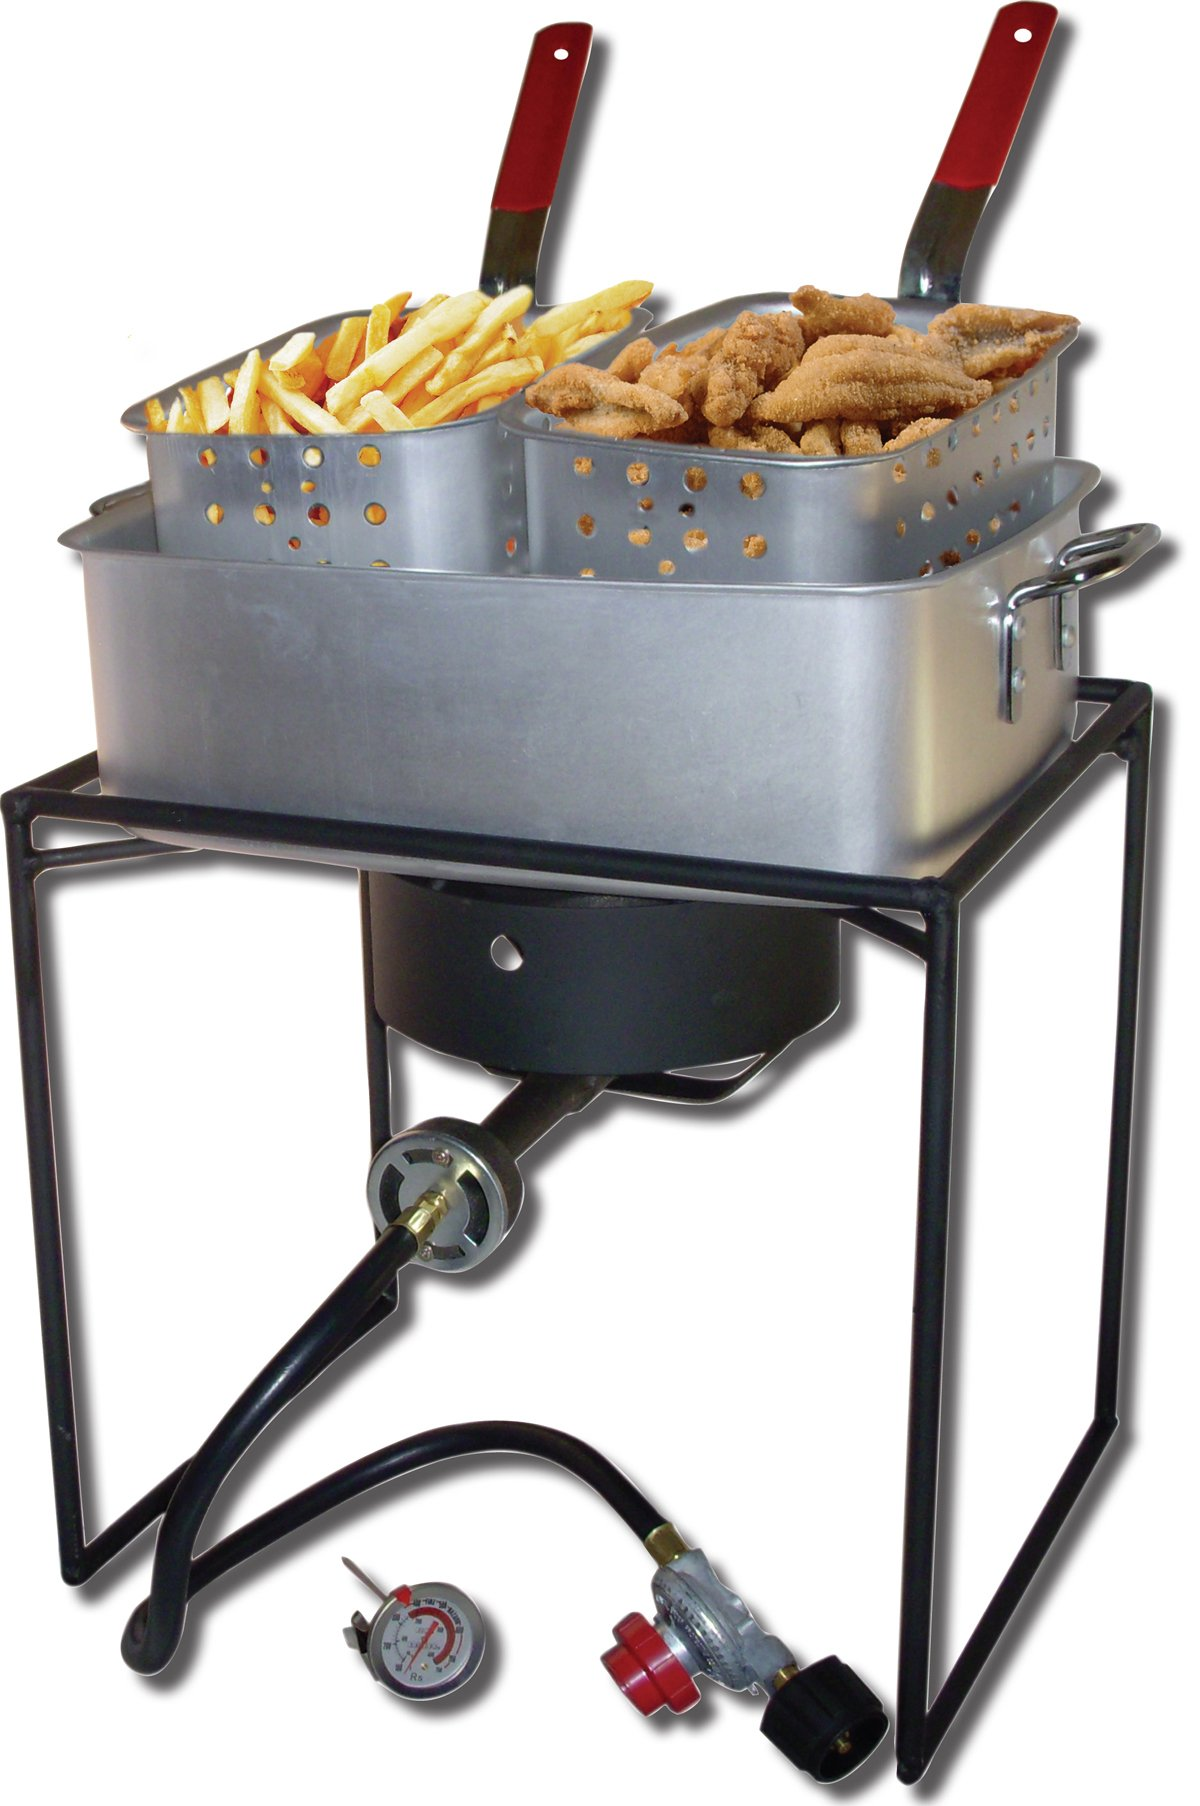 King Kooker 1618 16-Inch Propane Outdoor Cooker with Aluminum Pan and 2 Frying Baskets by King Kooker